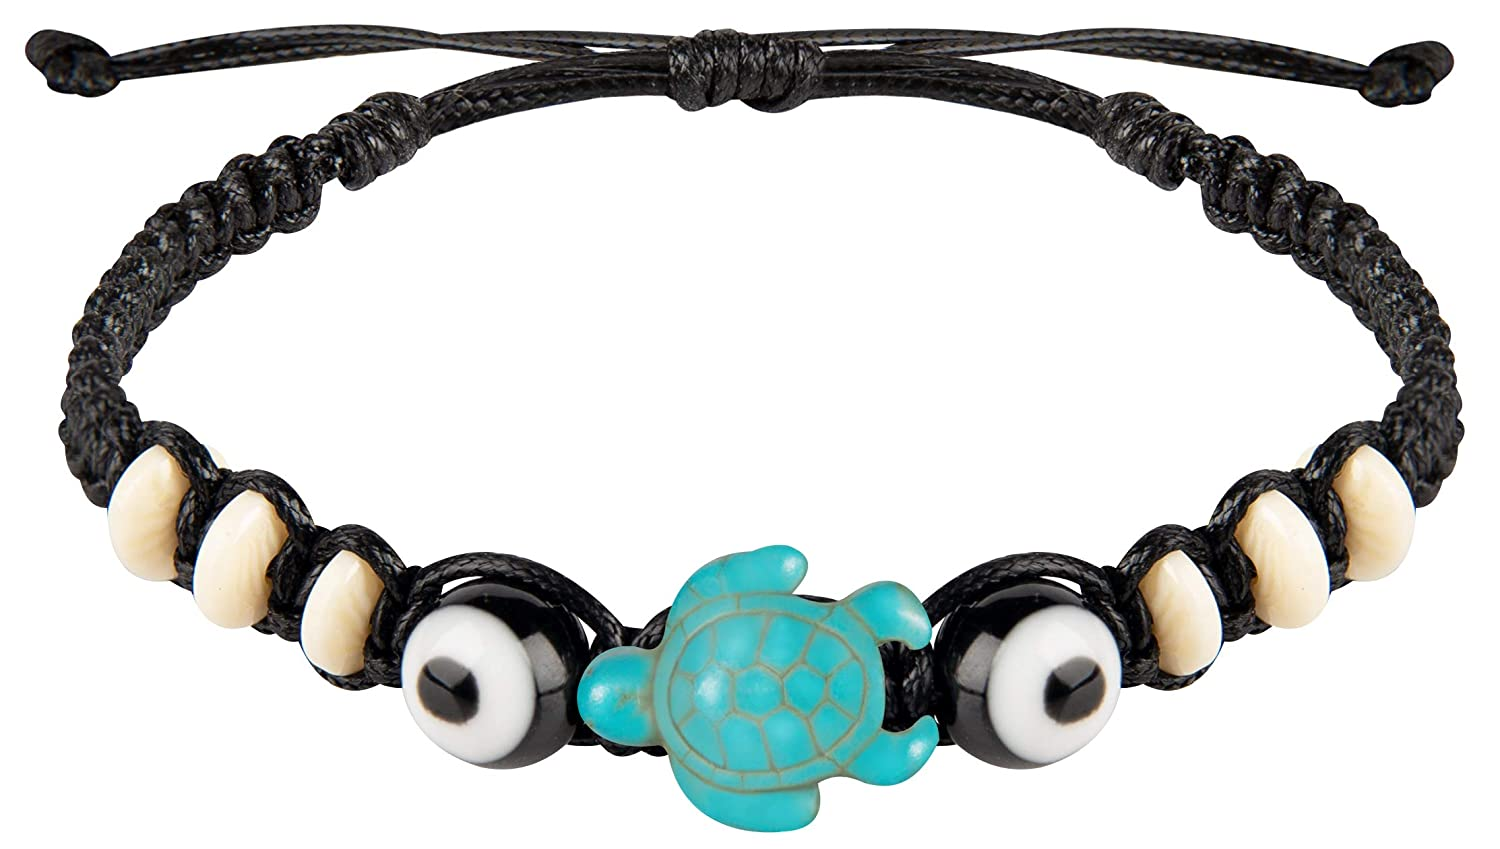 Sun Life Style Save The Turtle Bracelet and Anklet - Sea Turtle Jewelry for Summer with Adjustable Fit